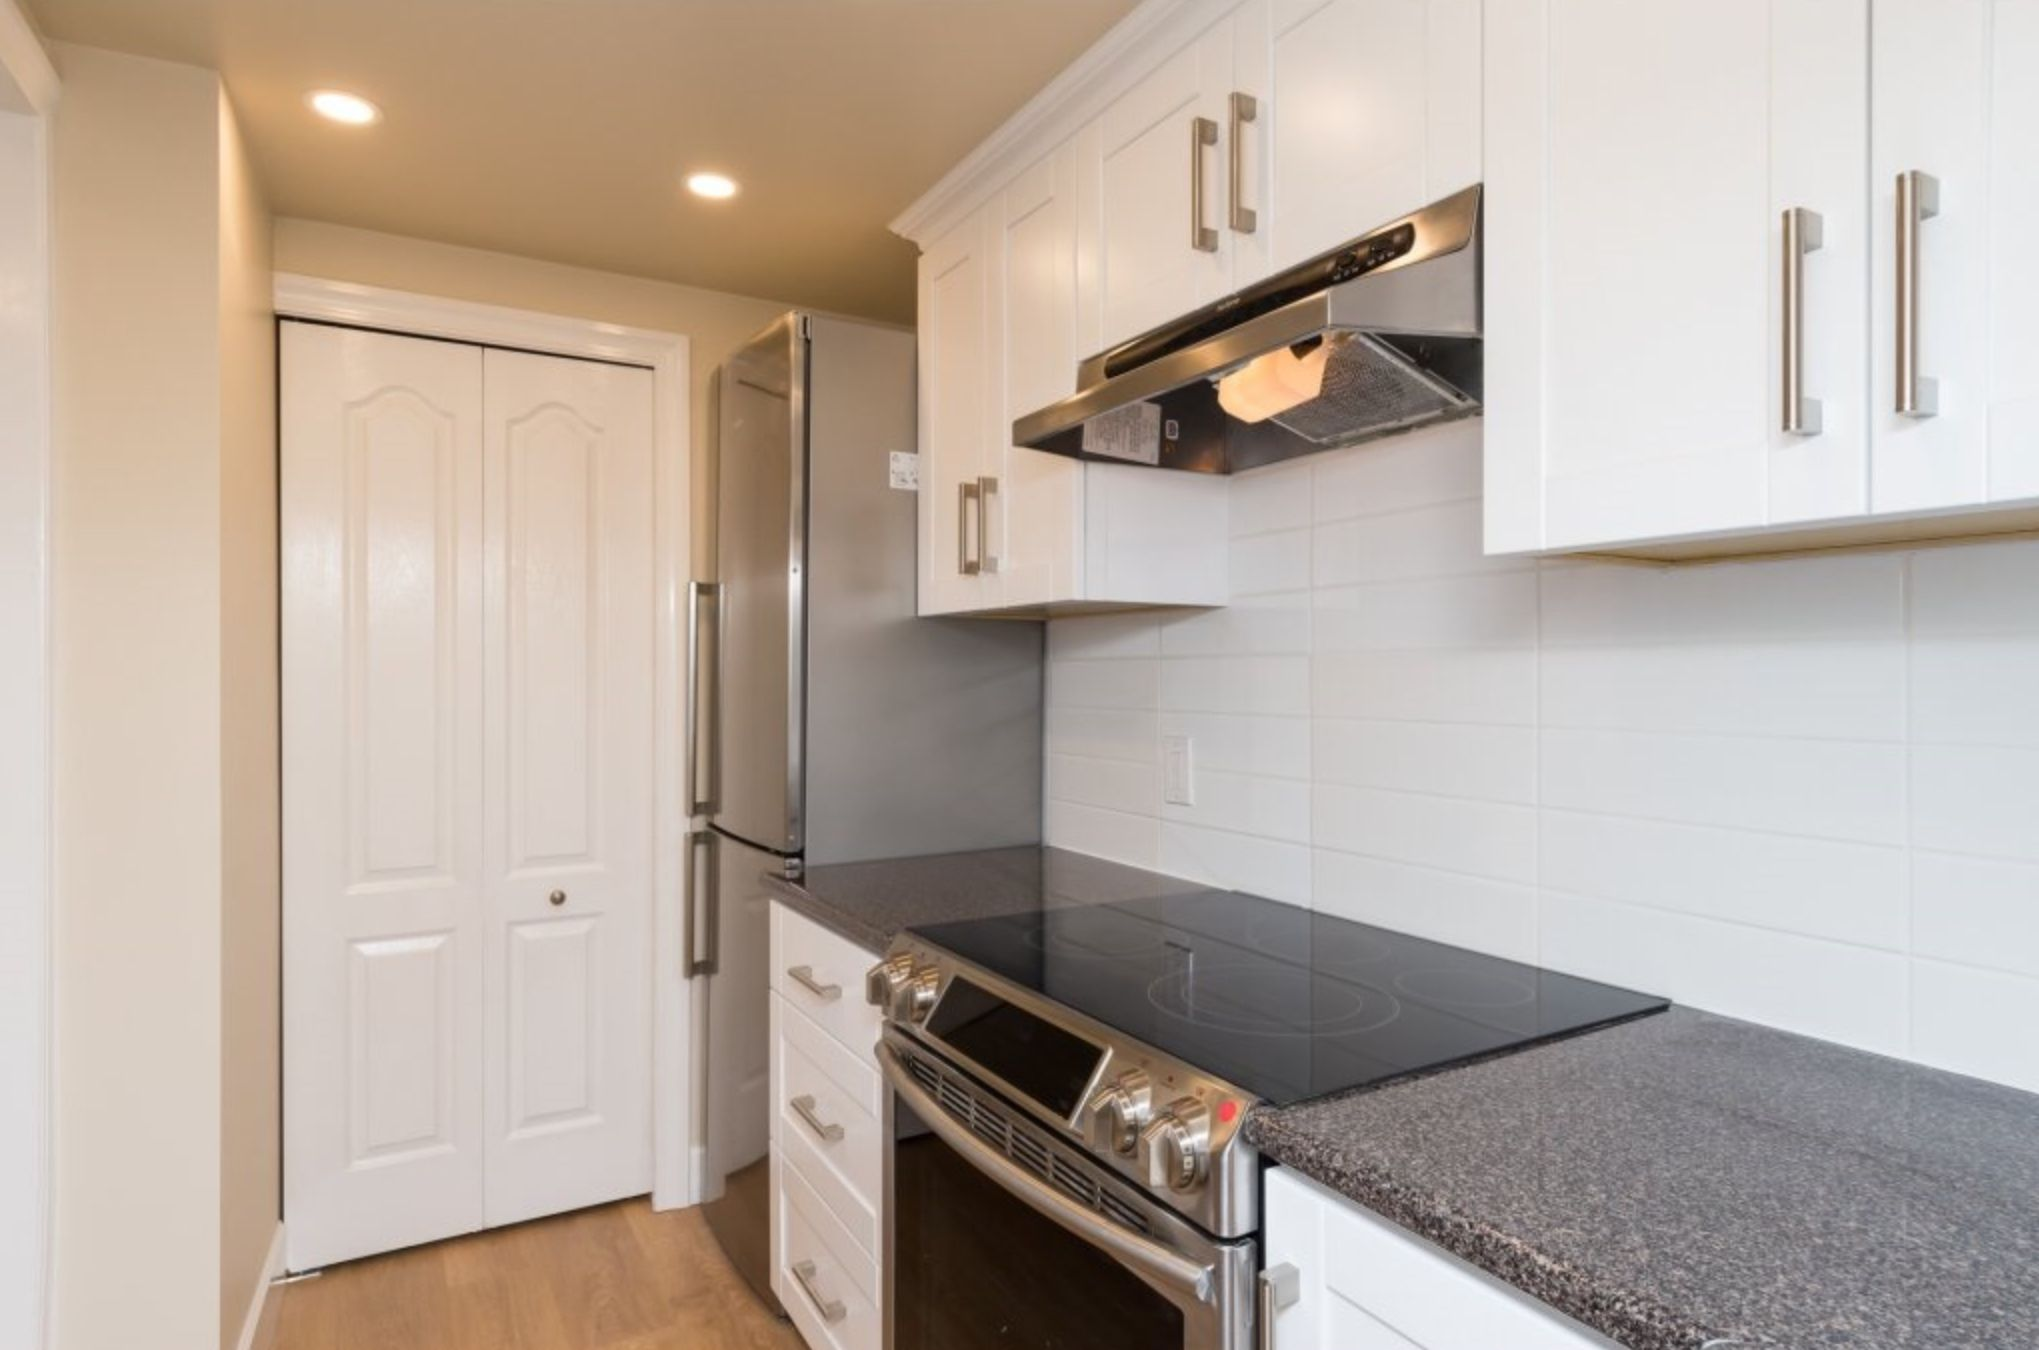 Photo 4: Photos: 410, 15111 Russell Avenue: White Rock Condo for sale (South Surrey White Rock)  : MLS®# R2152299